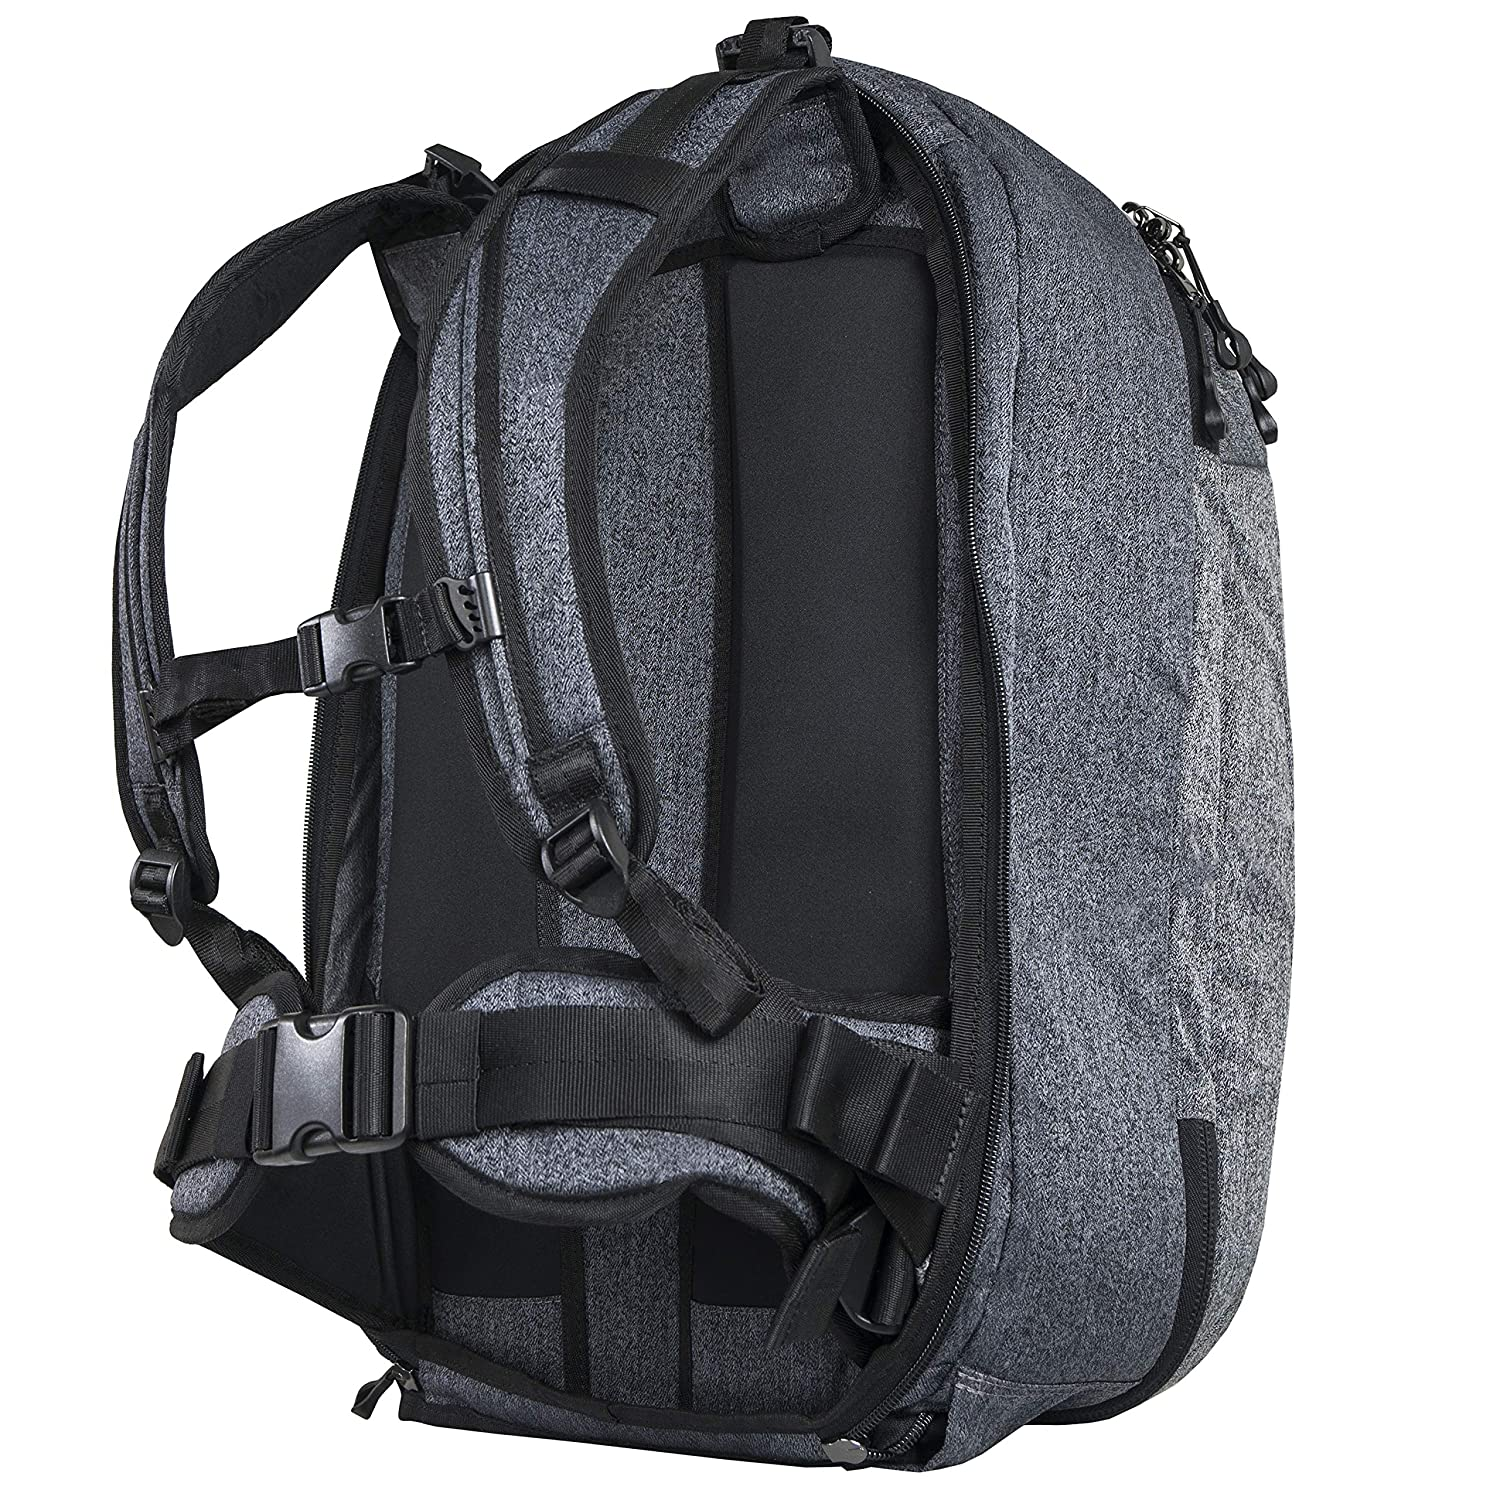 Sherpani Oslo 38L Nylon Travel Backpack and Weekender Bag for Men and Women with RFID Protection